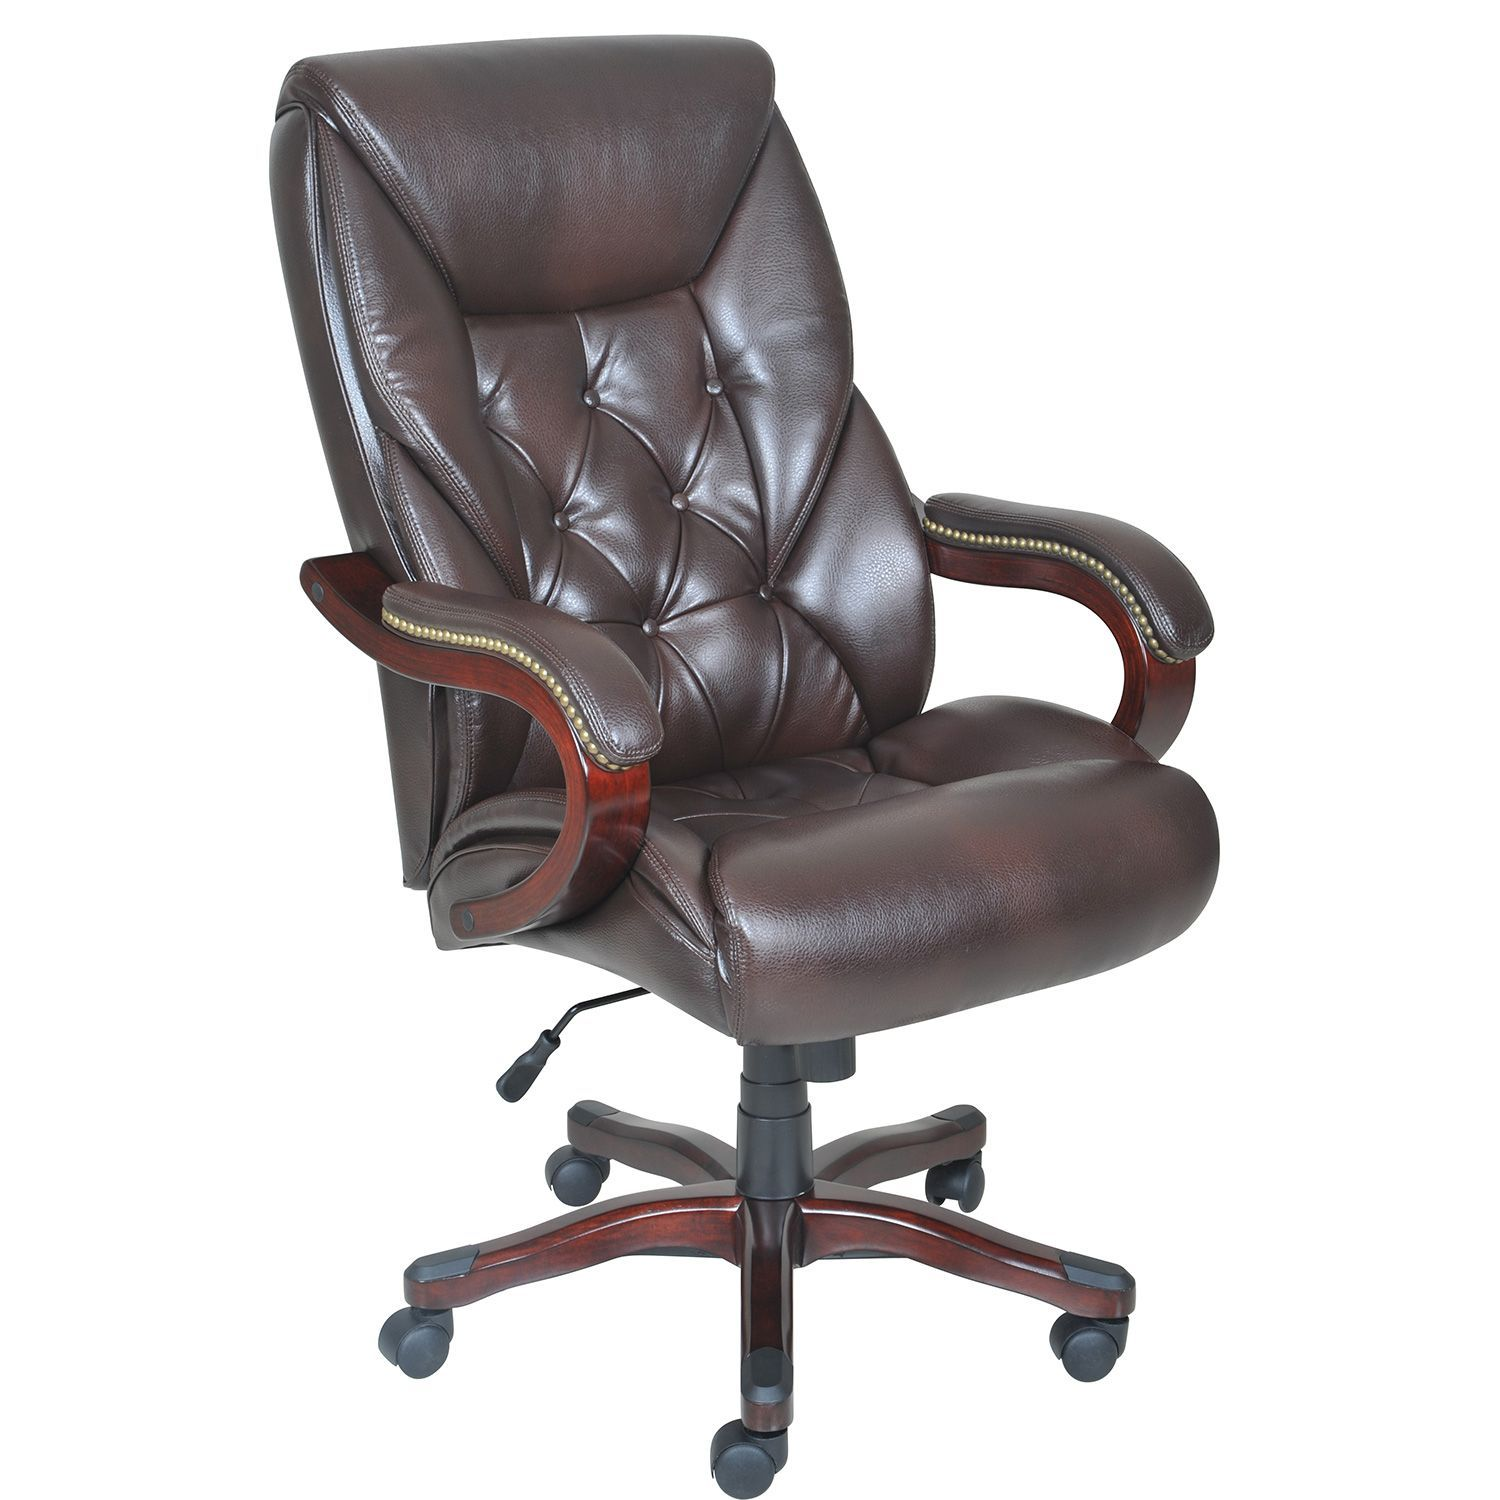 Lane Big Tall Bonded Leather Executive Chair 174 63 Sam S